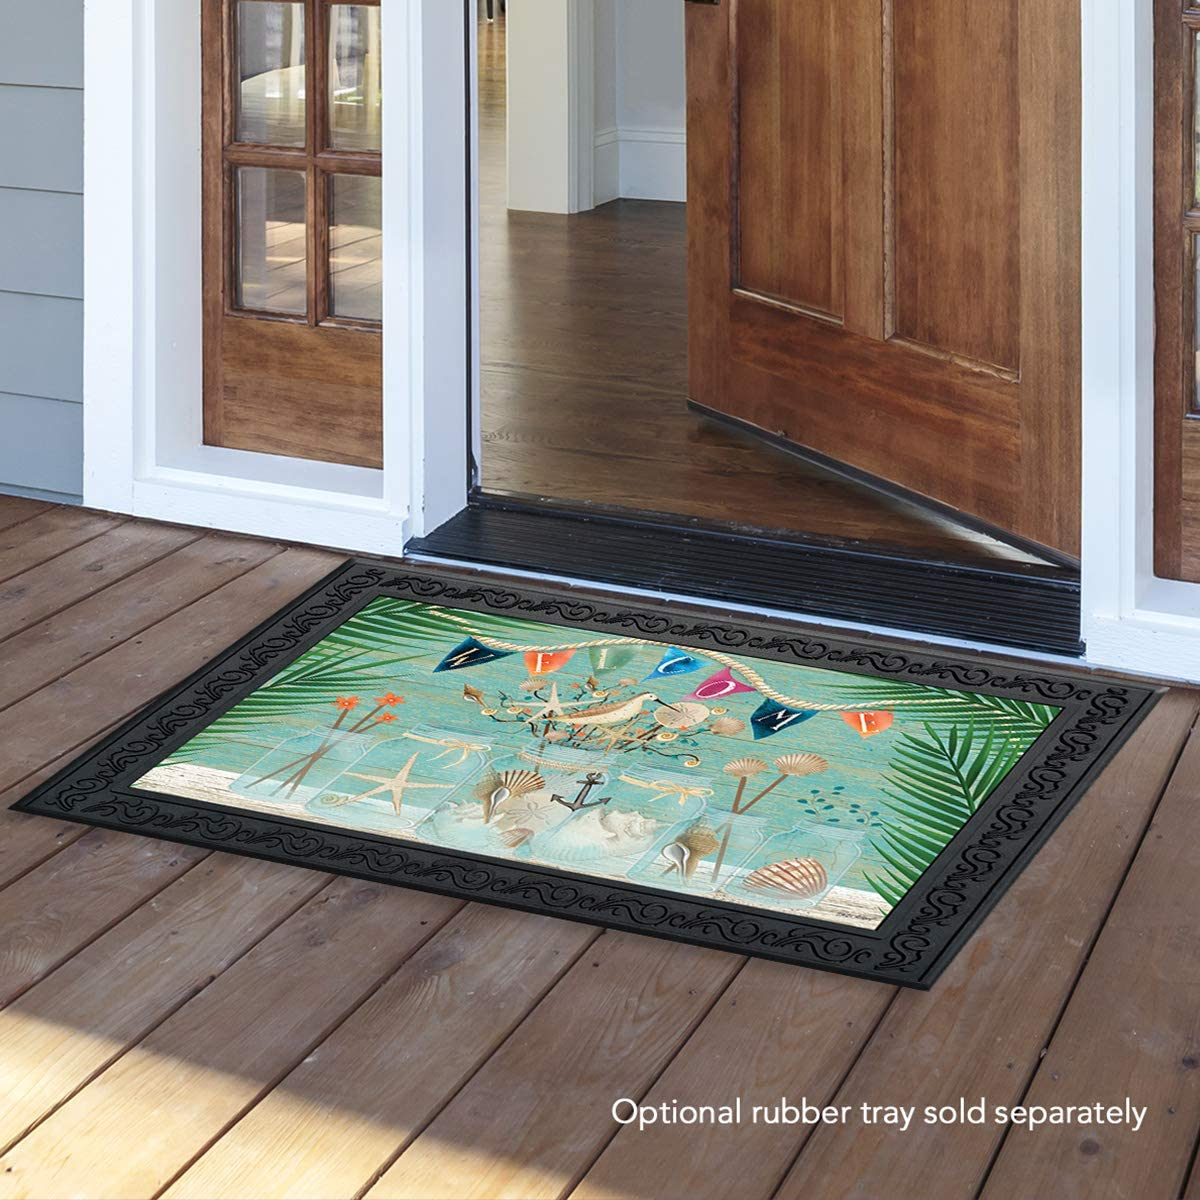 Briarwood Lane Coastal Mason Jar Summer Doormat Nautical Indoor Outdoor 18 x30